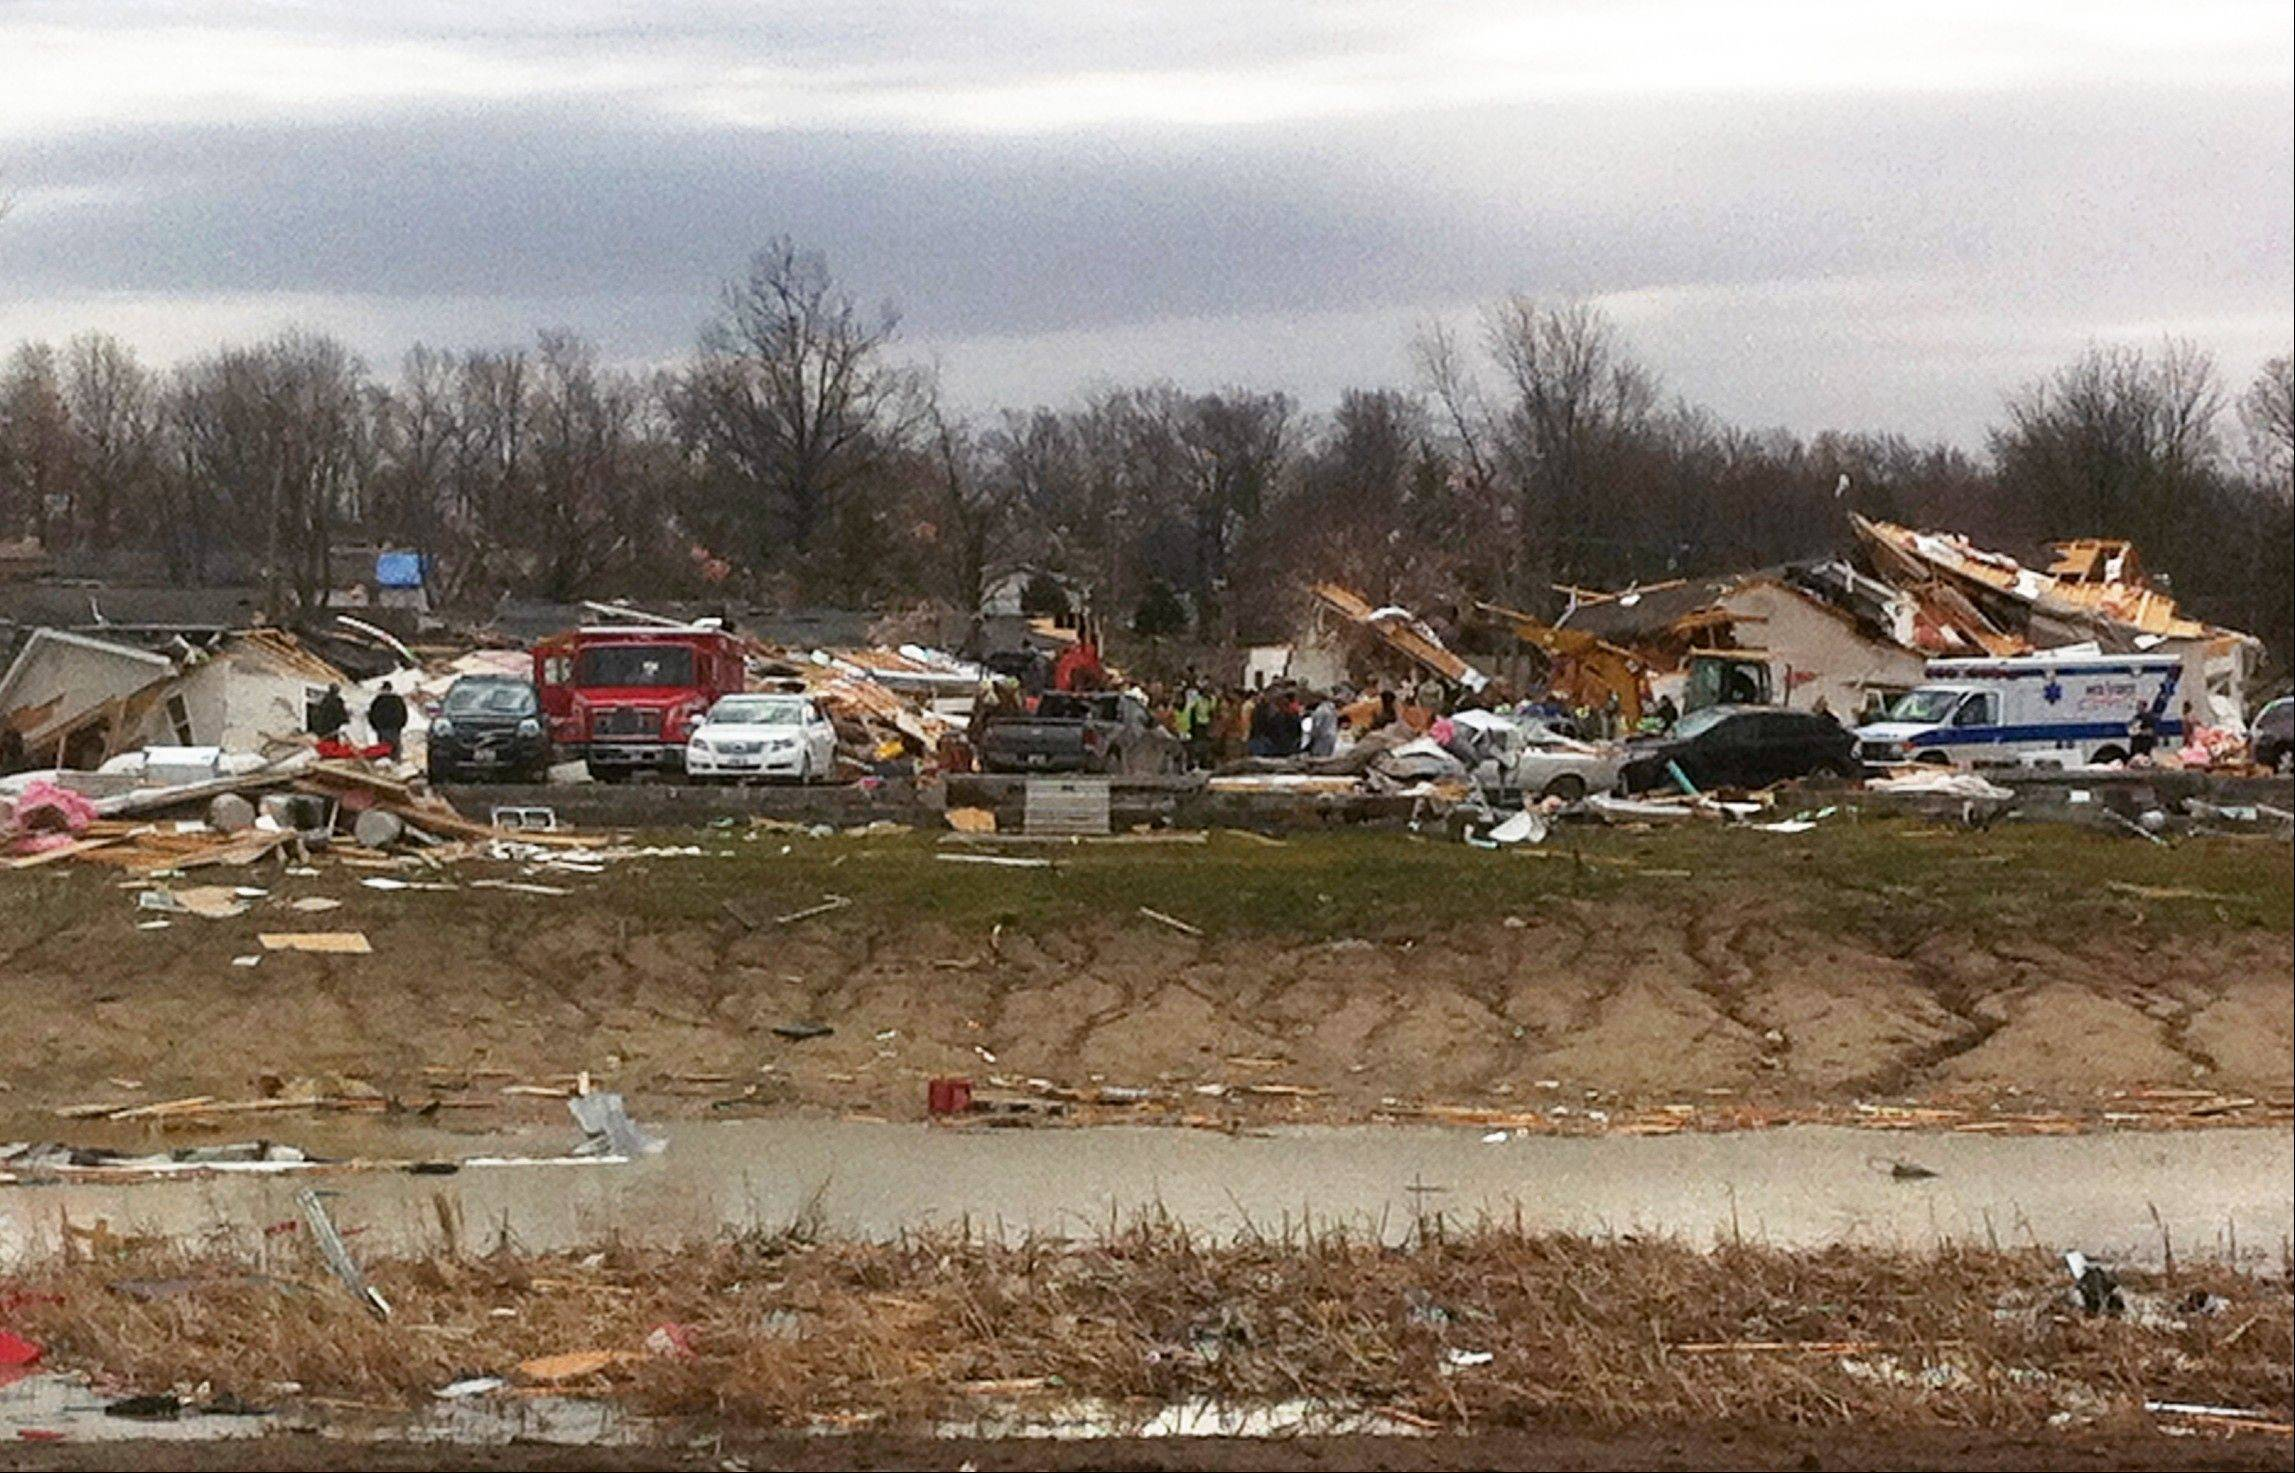 A residential area in Harrisburg, Ill. is damaged after a storm passed, Wednesday, Feb. 29, 2012. A severe pre-dawn storm pounded portions of southern Illinois on Wednesday. Several deaths have been reported in Harrisburg and left the city's medical center scrambling to treat an influx of injured, the hospital's top administrator said.